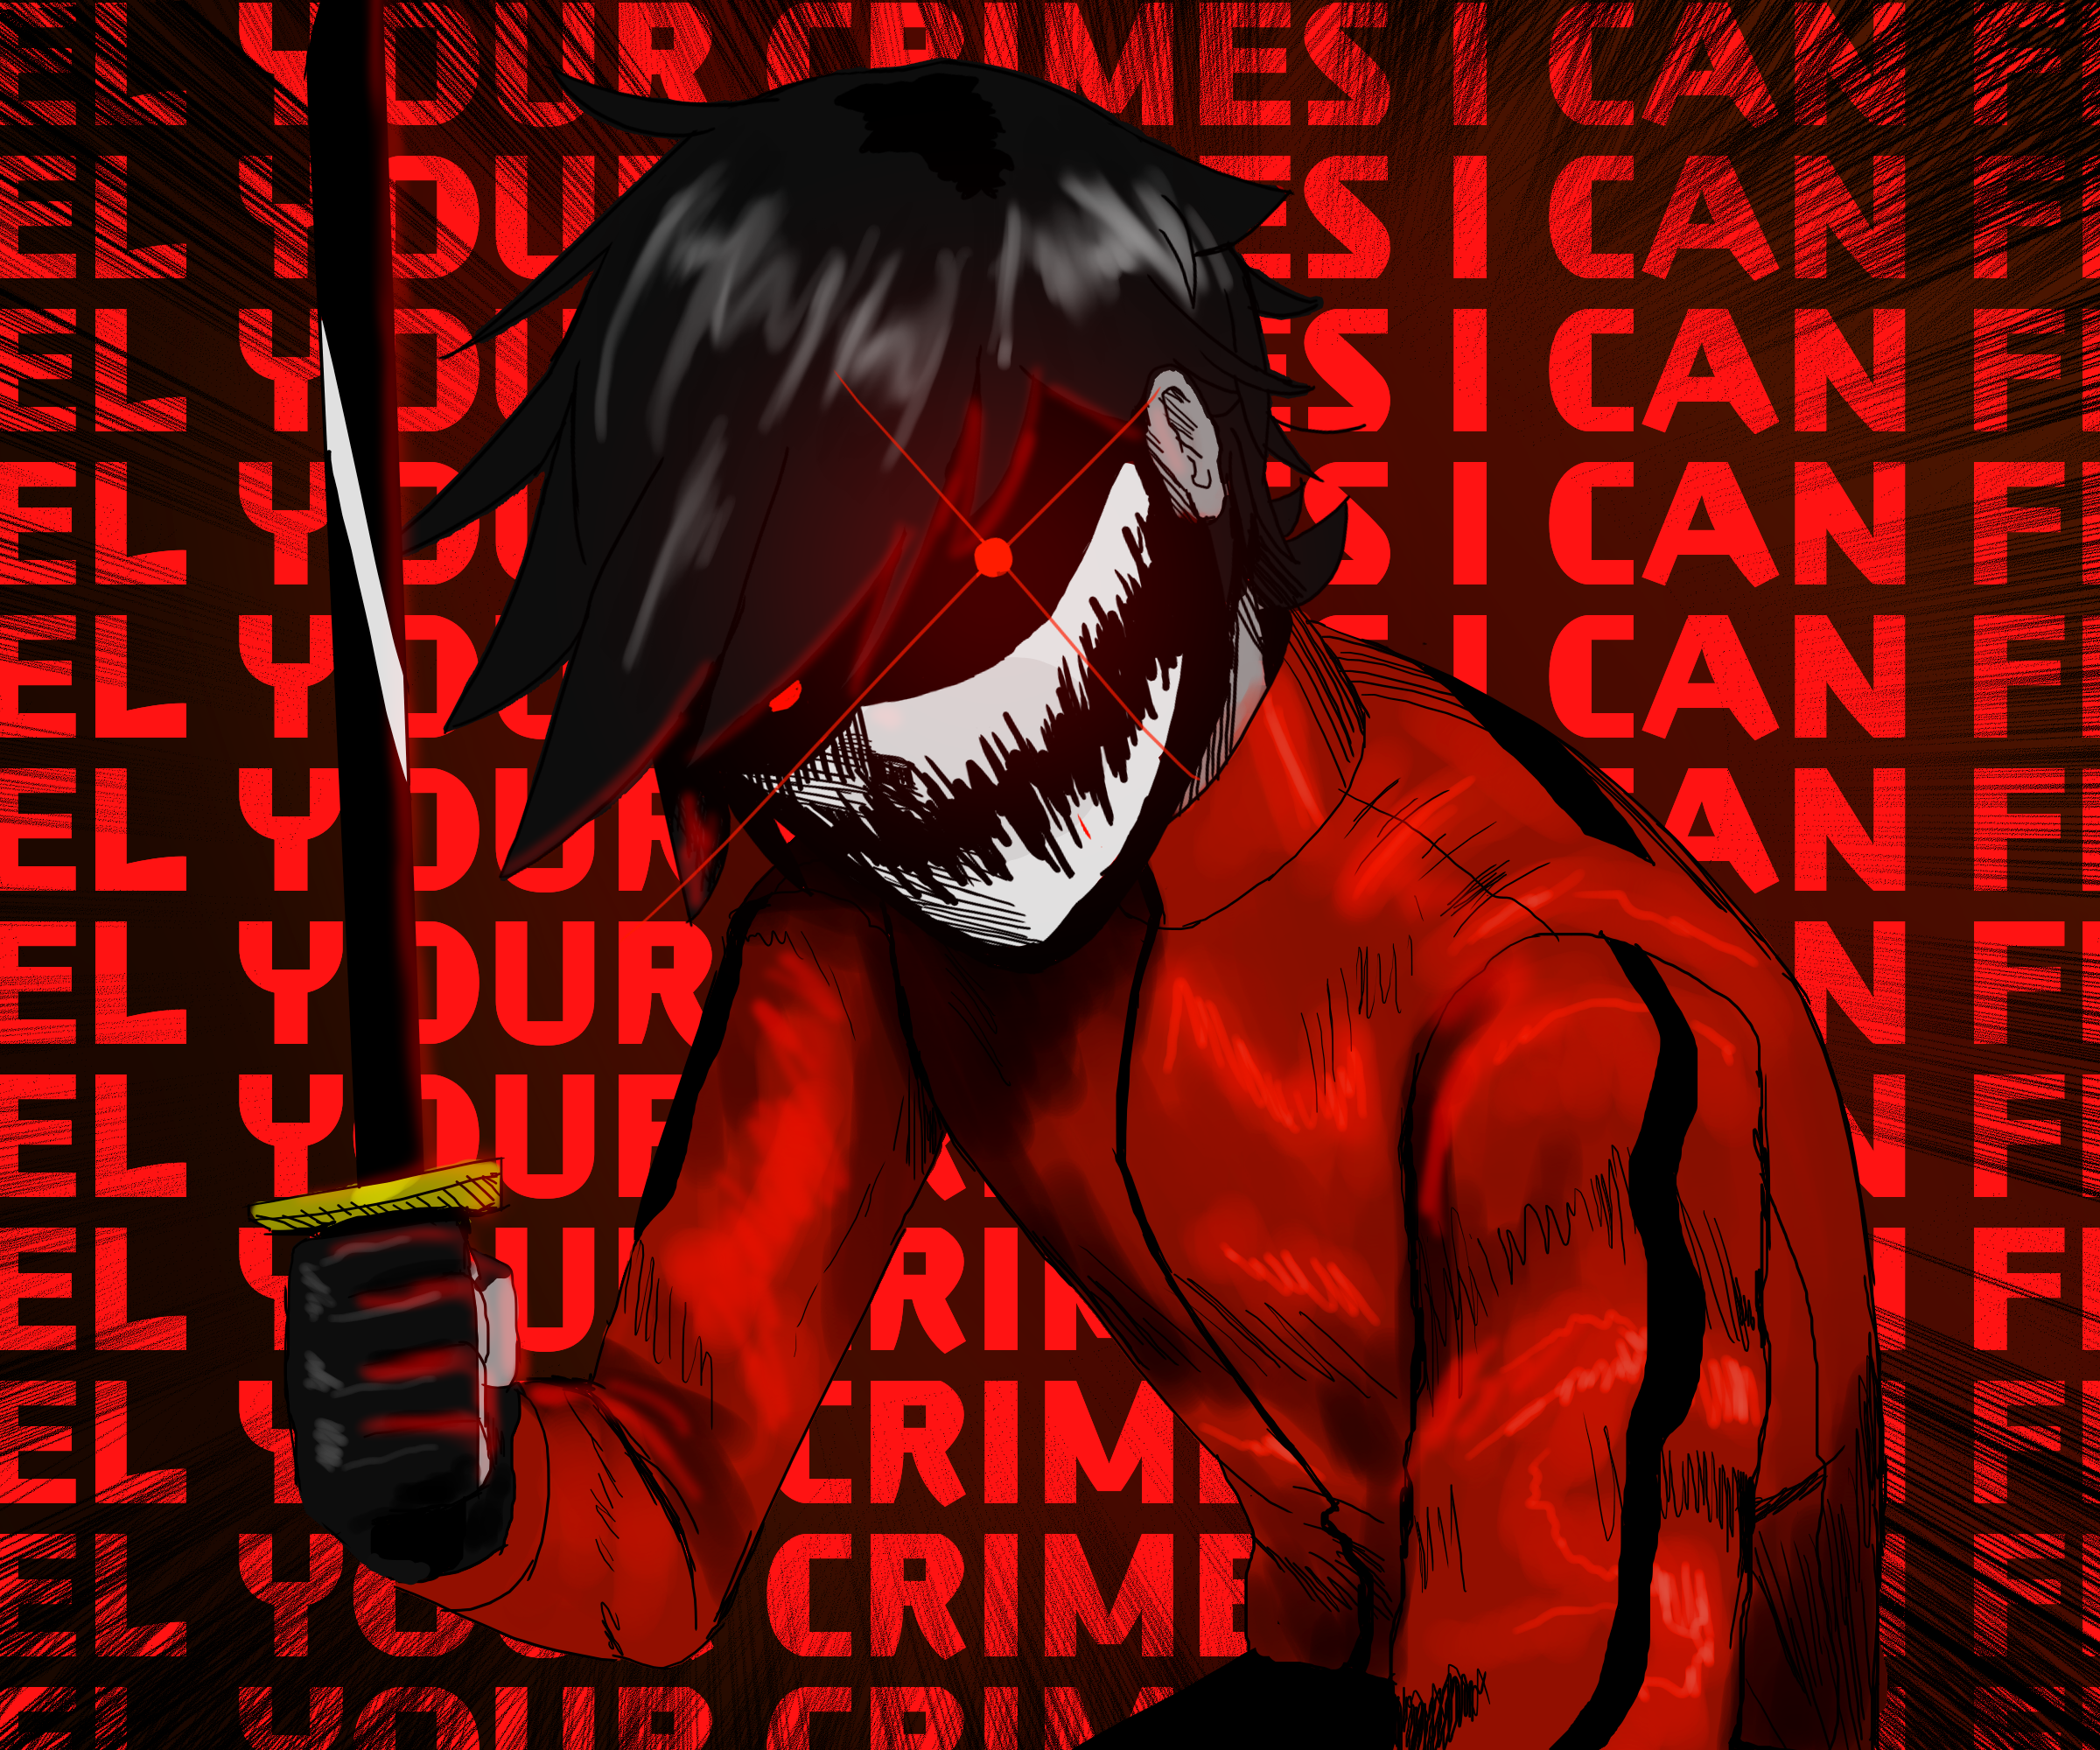 Jack can feel your crimes